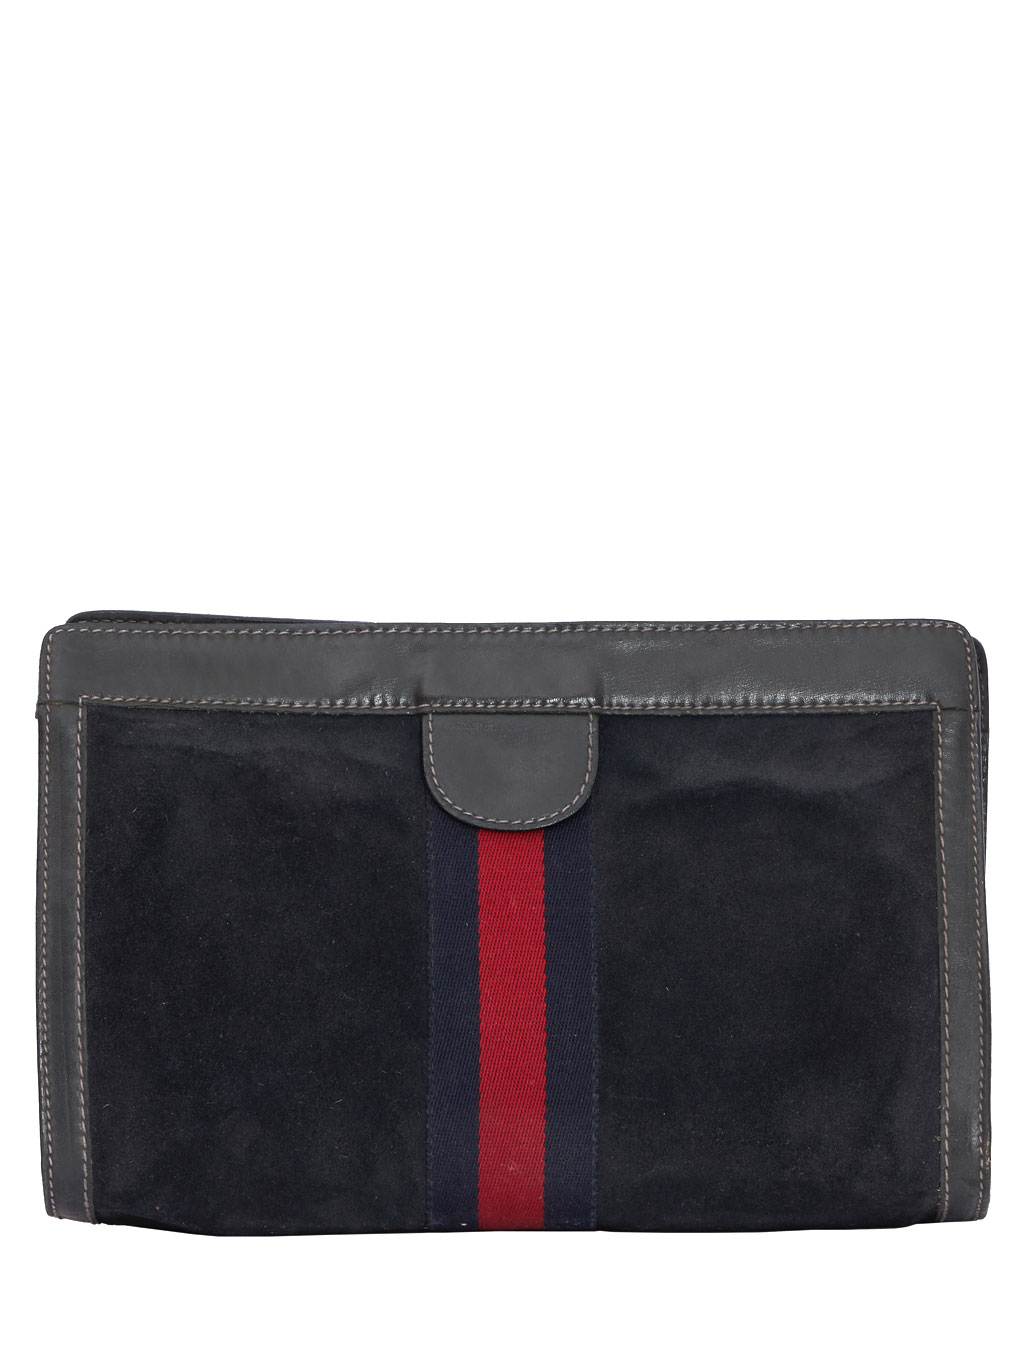 GUCCI シェリーライン SUEDE CLUTCH BAG BL